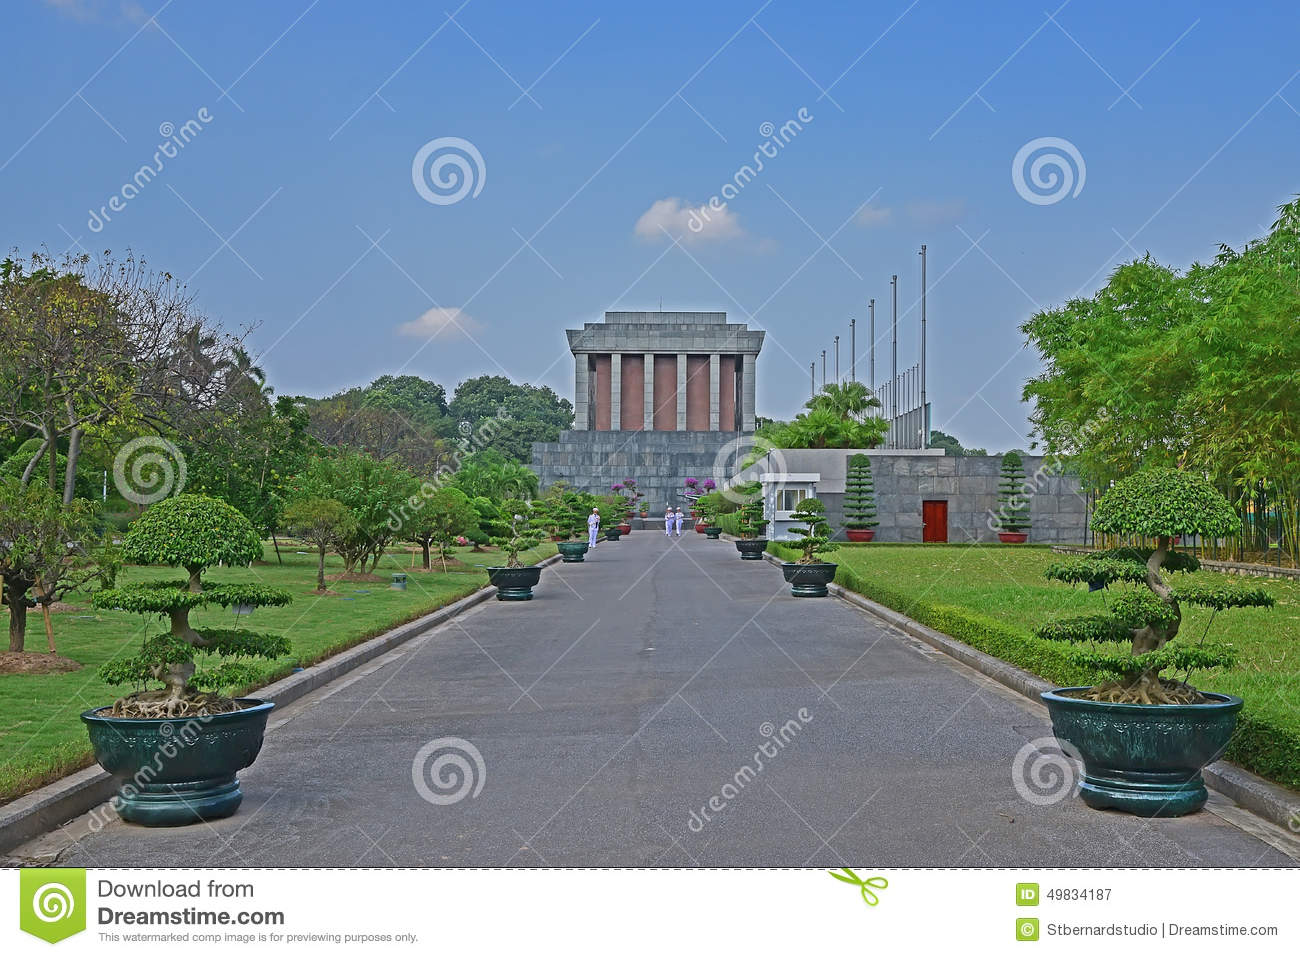 Ho Chi Minh Mausoleum in Hanoi Vietnam with soldiers marching on the pathway